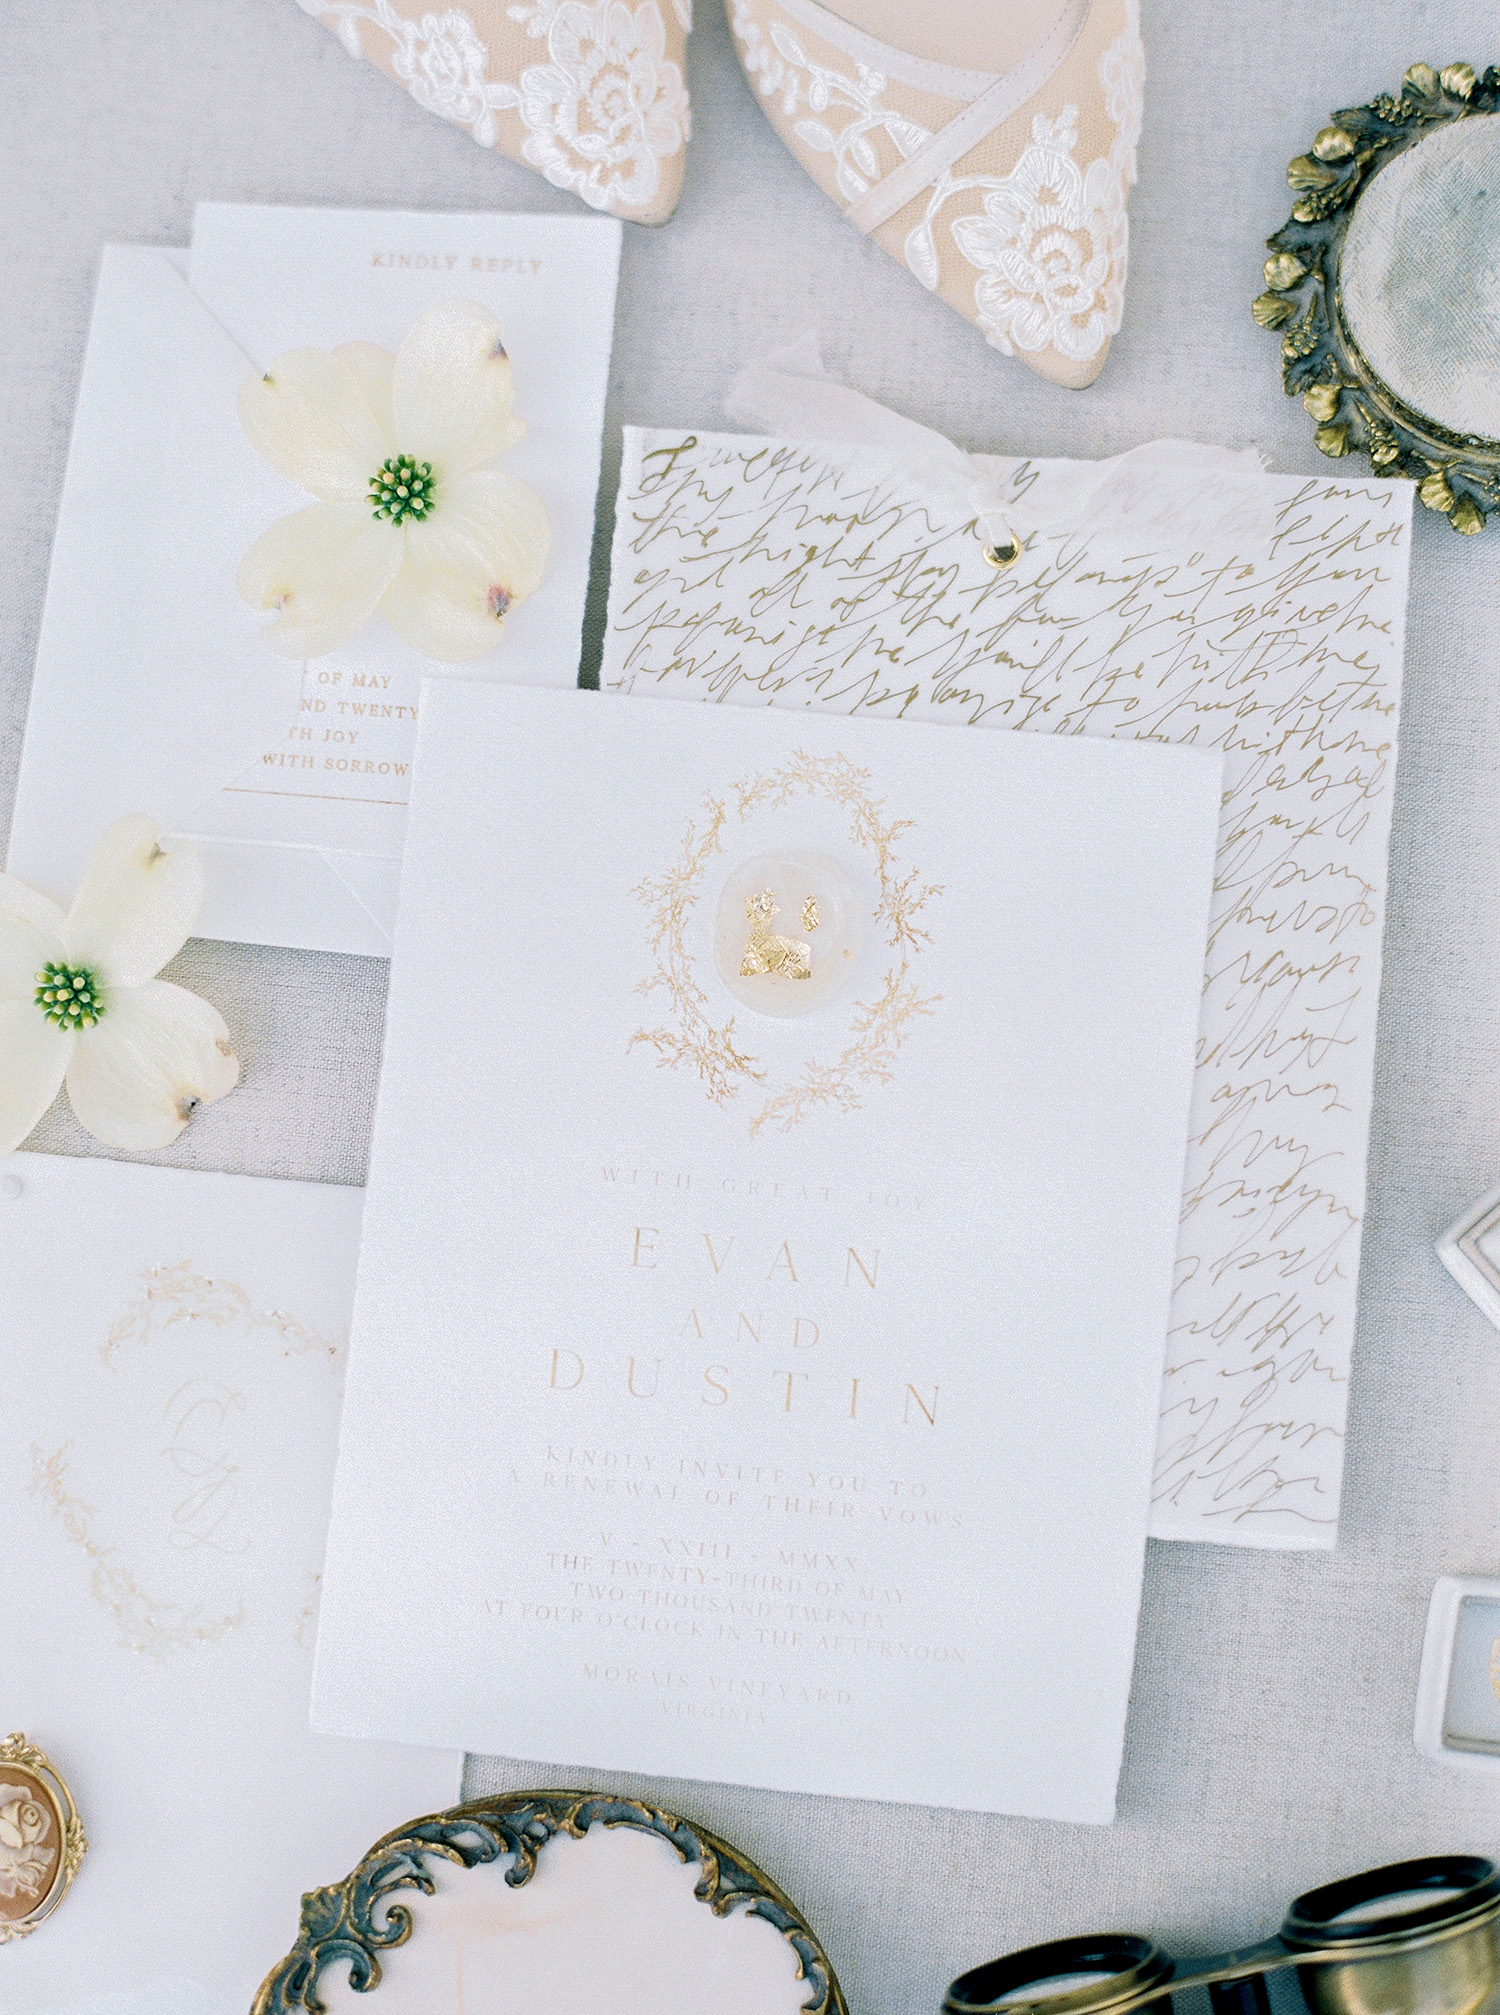 evan dustin vow renewal stationery invites